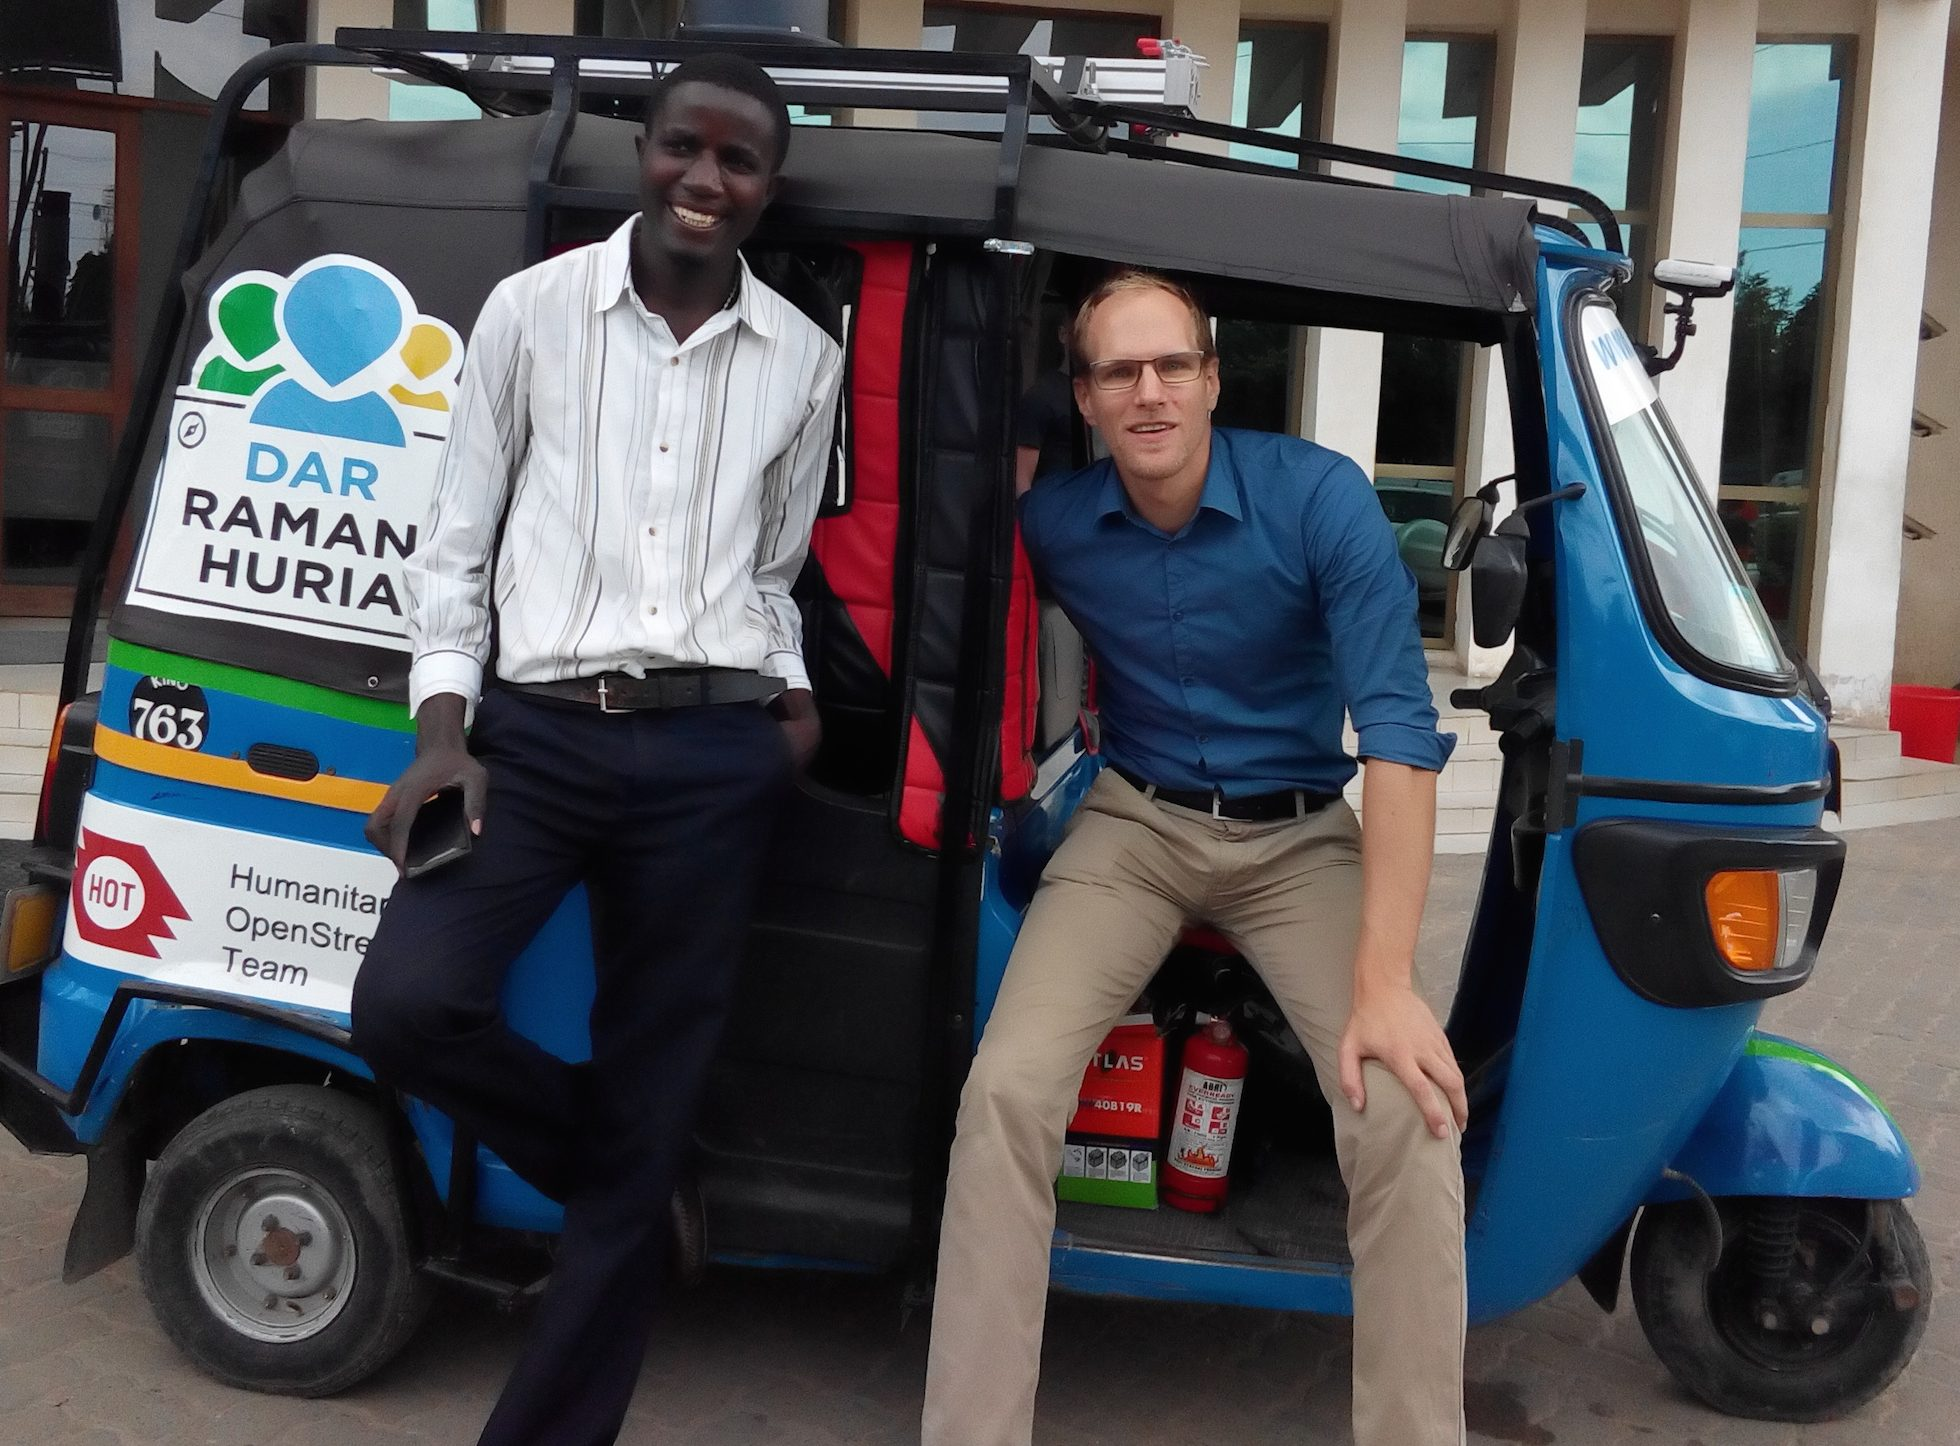 Map maker Paul Uithol (right) in Dar es Salaam, Tanzania